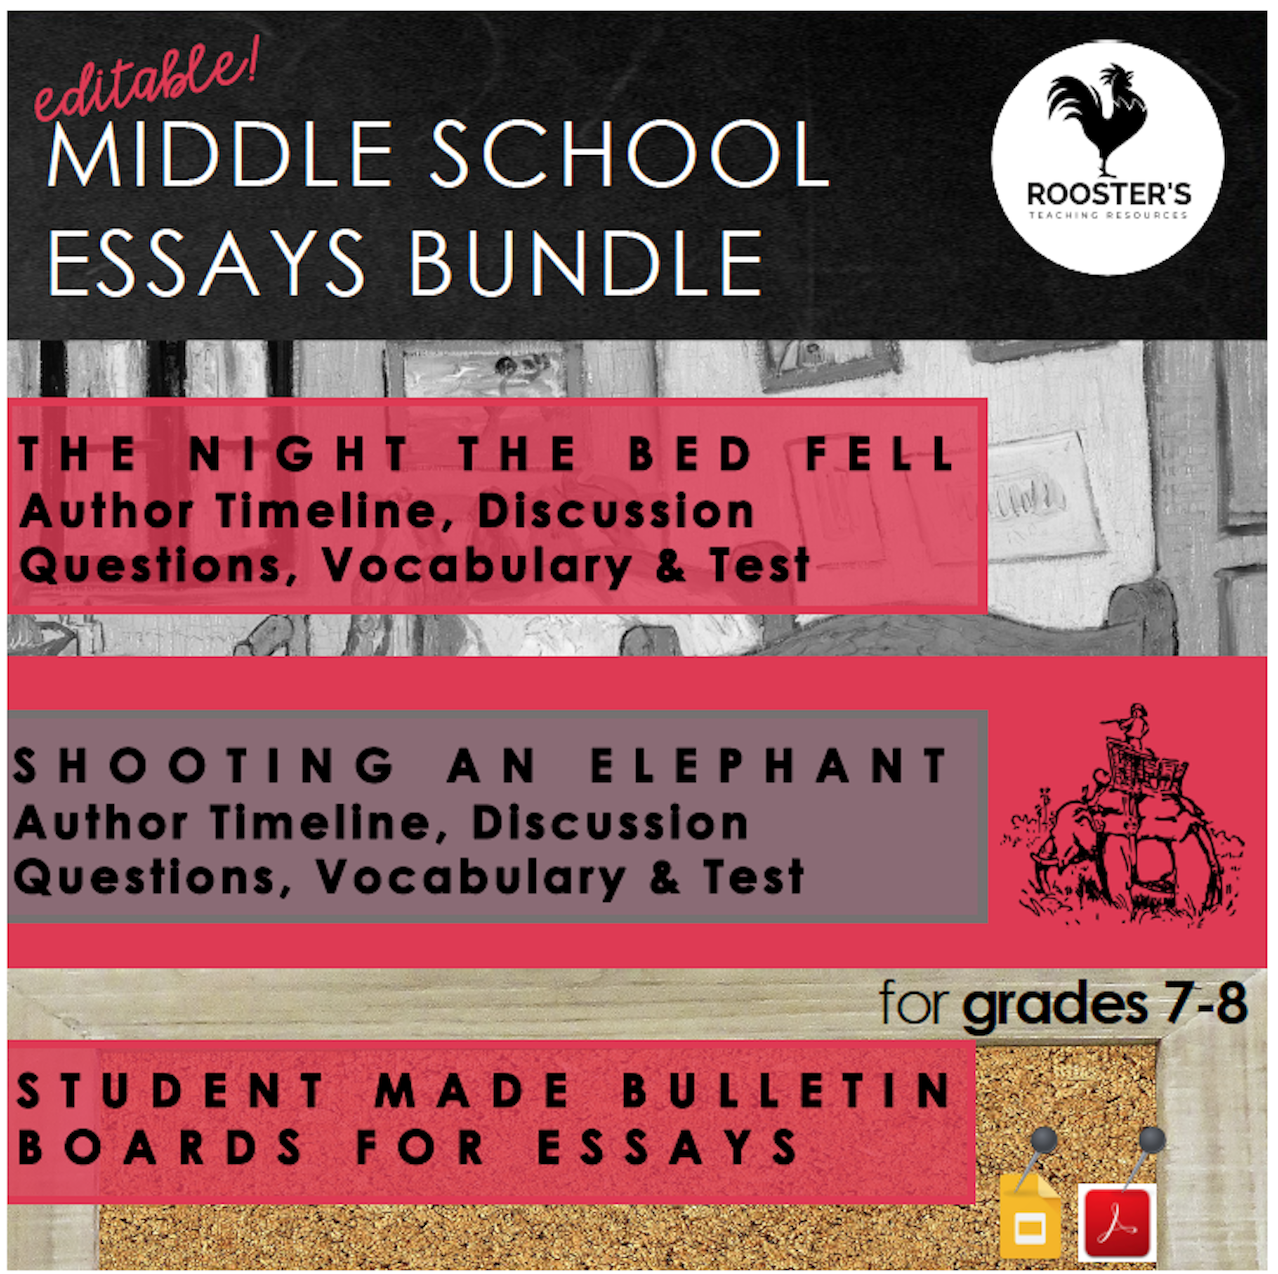 why read the classics essays bundle